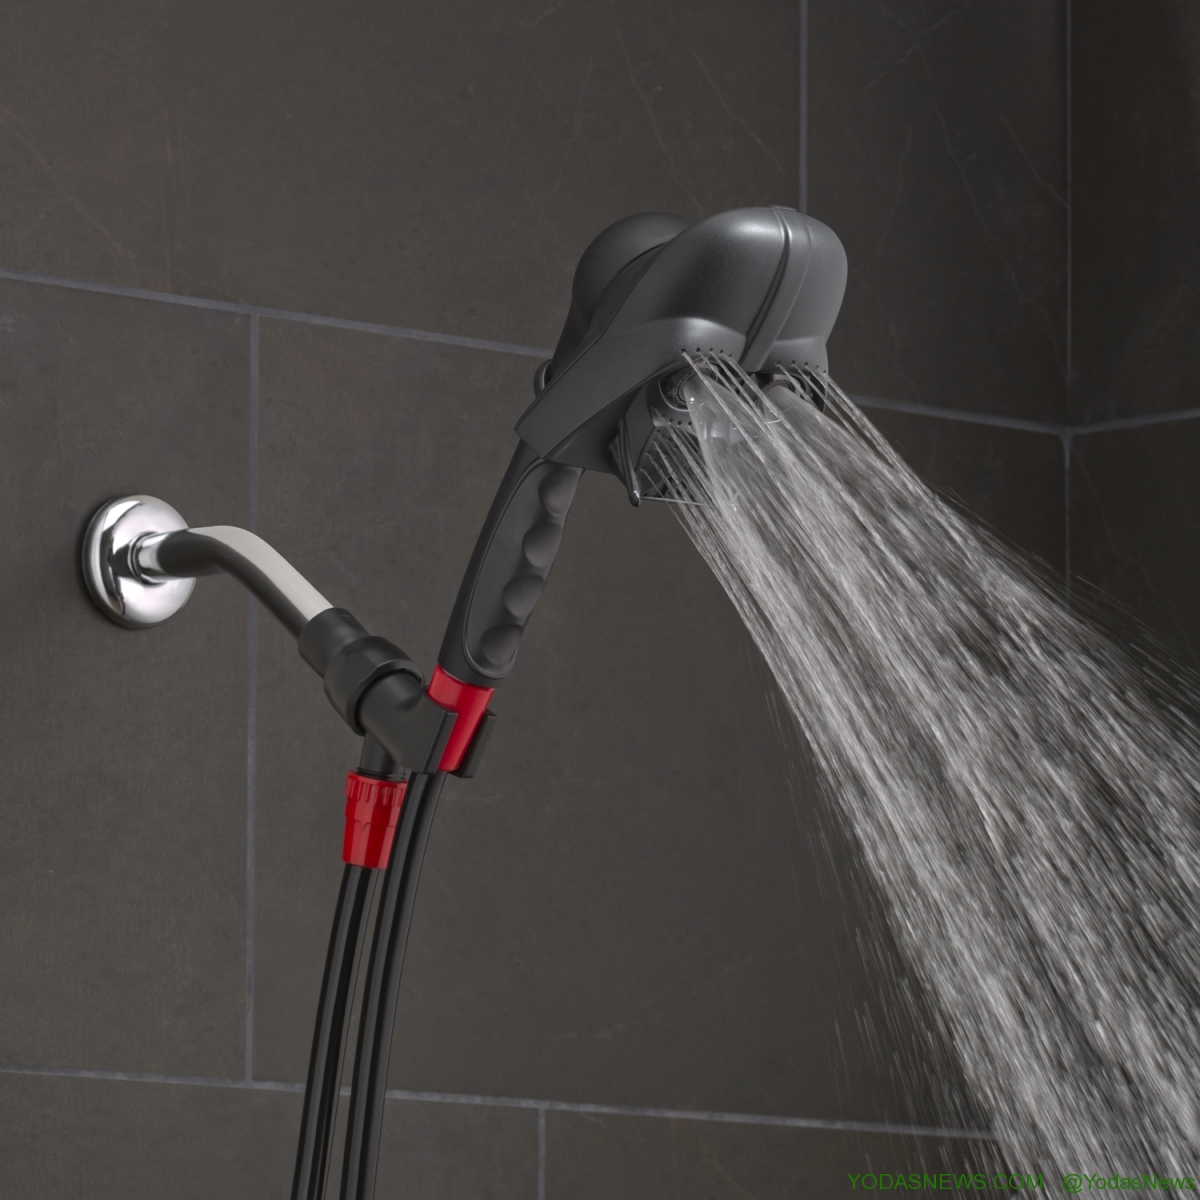 Star Wars Shower Heads - Great Holiday Gift! - YodasNews.com ...